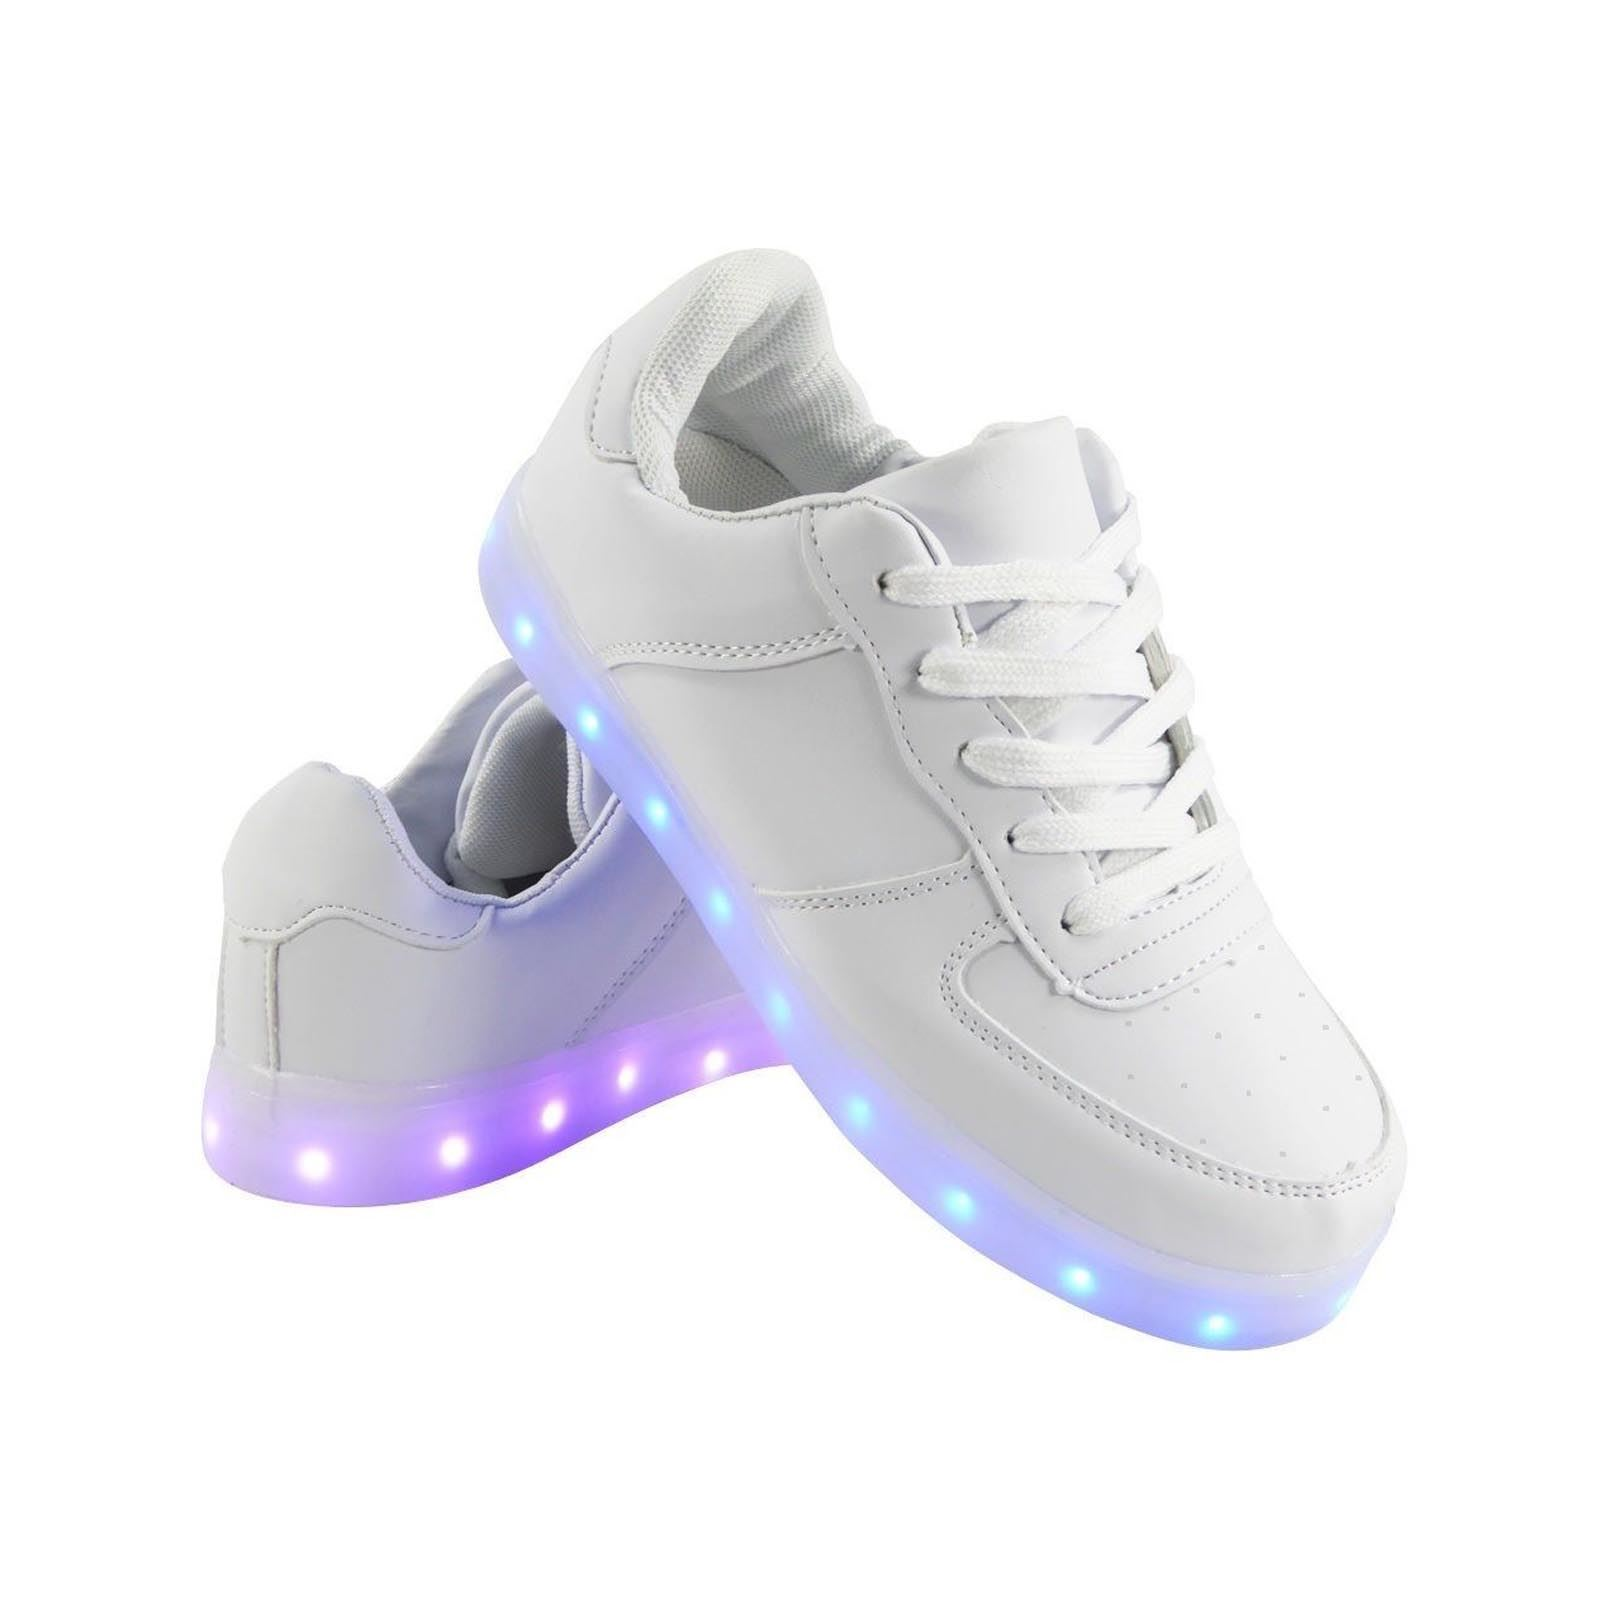 ODEMA LED Trainers Sport Sneakers 7 Colors USB Charging Low Top Light up Shoes Sneakers for Women Men Size by ODEMA Usually dispatched within 4 to 5 days.